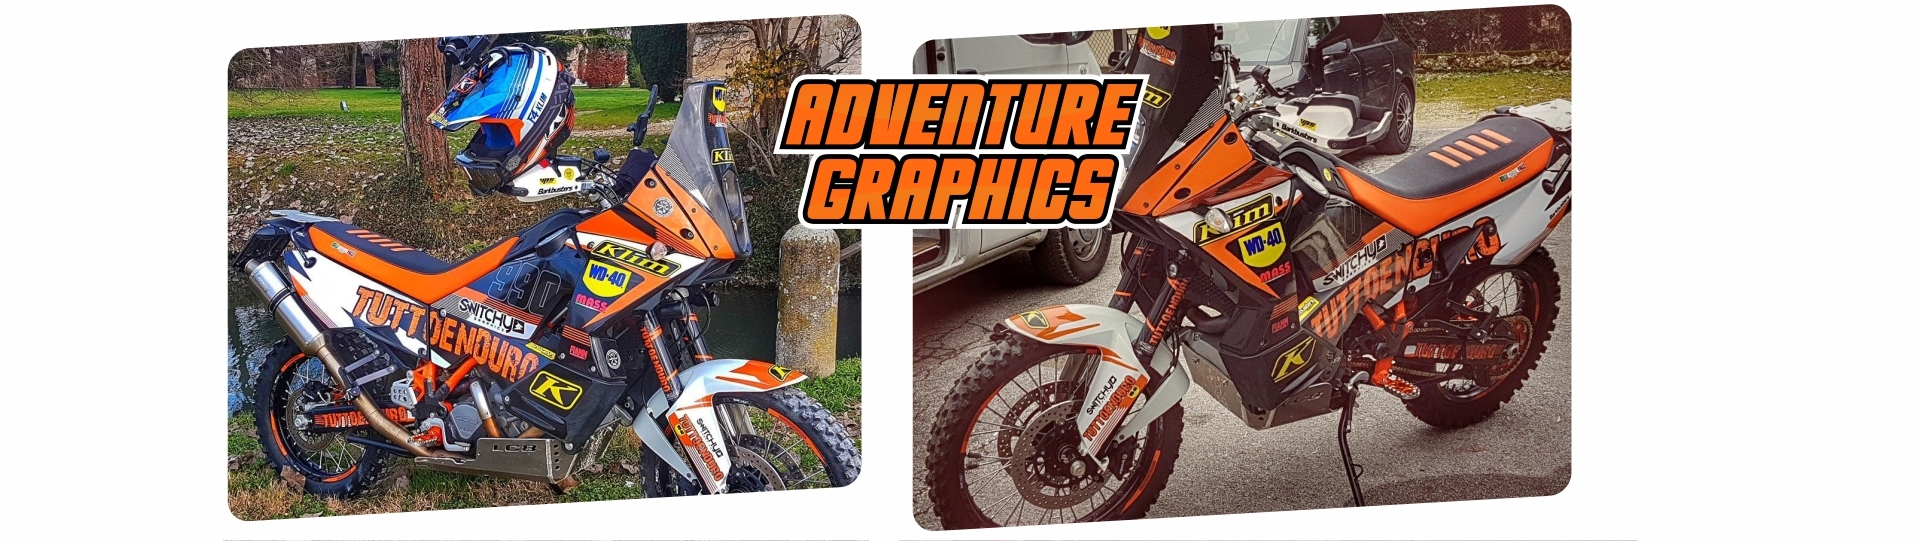 COMPATIBLE STICKERS FOR KTM 990 ADVENTURE